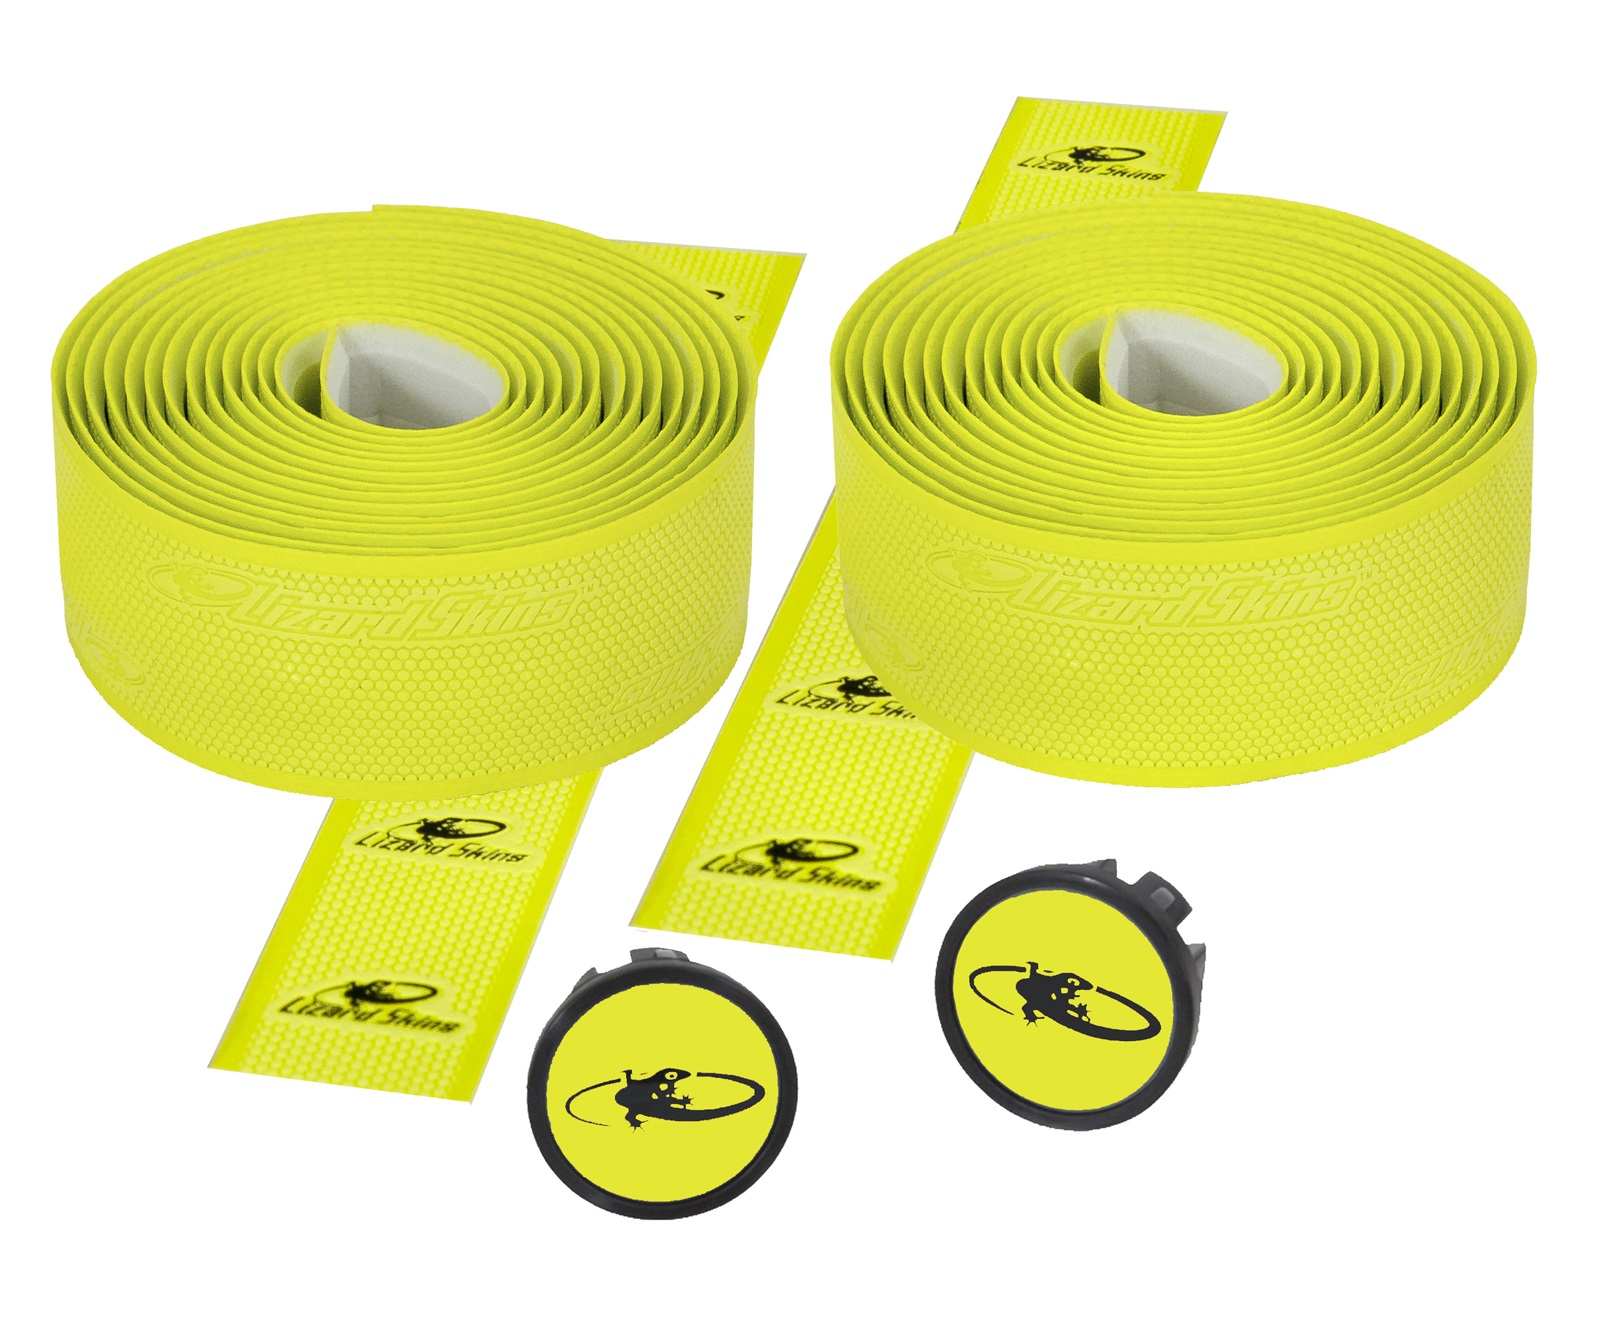 Lizardskins DSP 1.8 Handlebar Tape 1.8x208mm - Neon Yellow